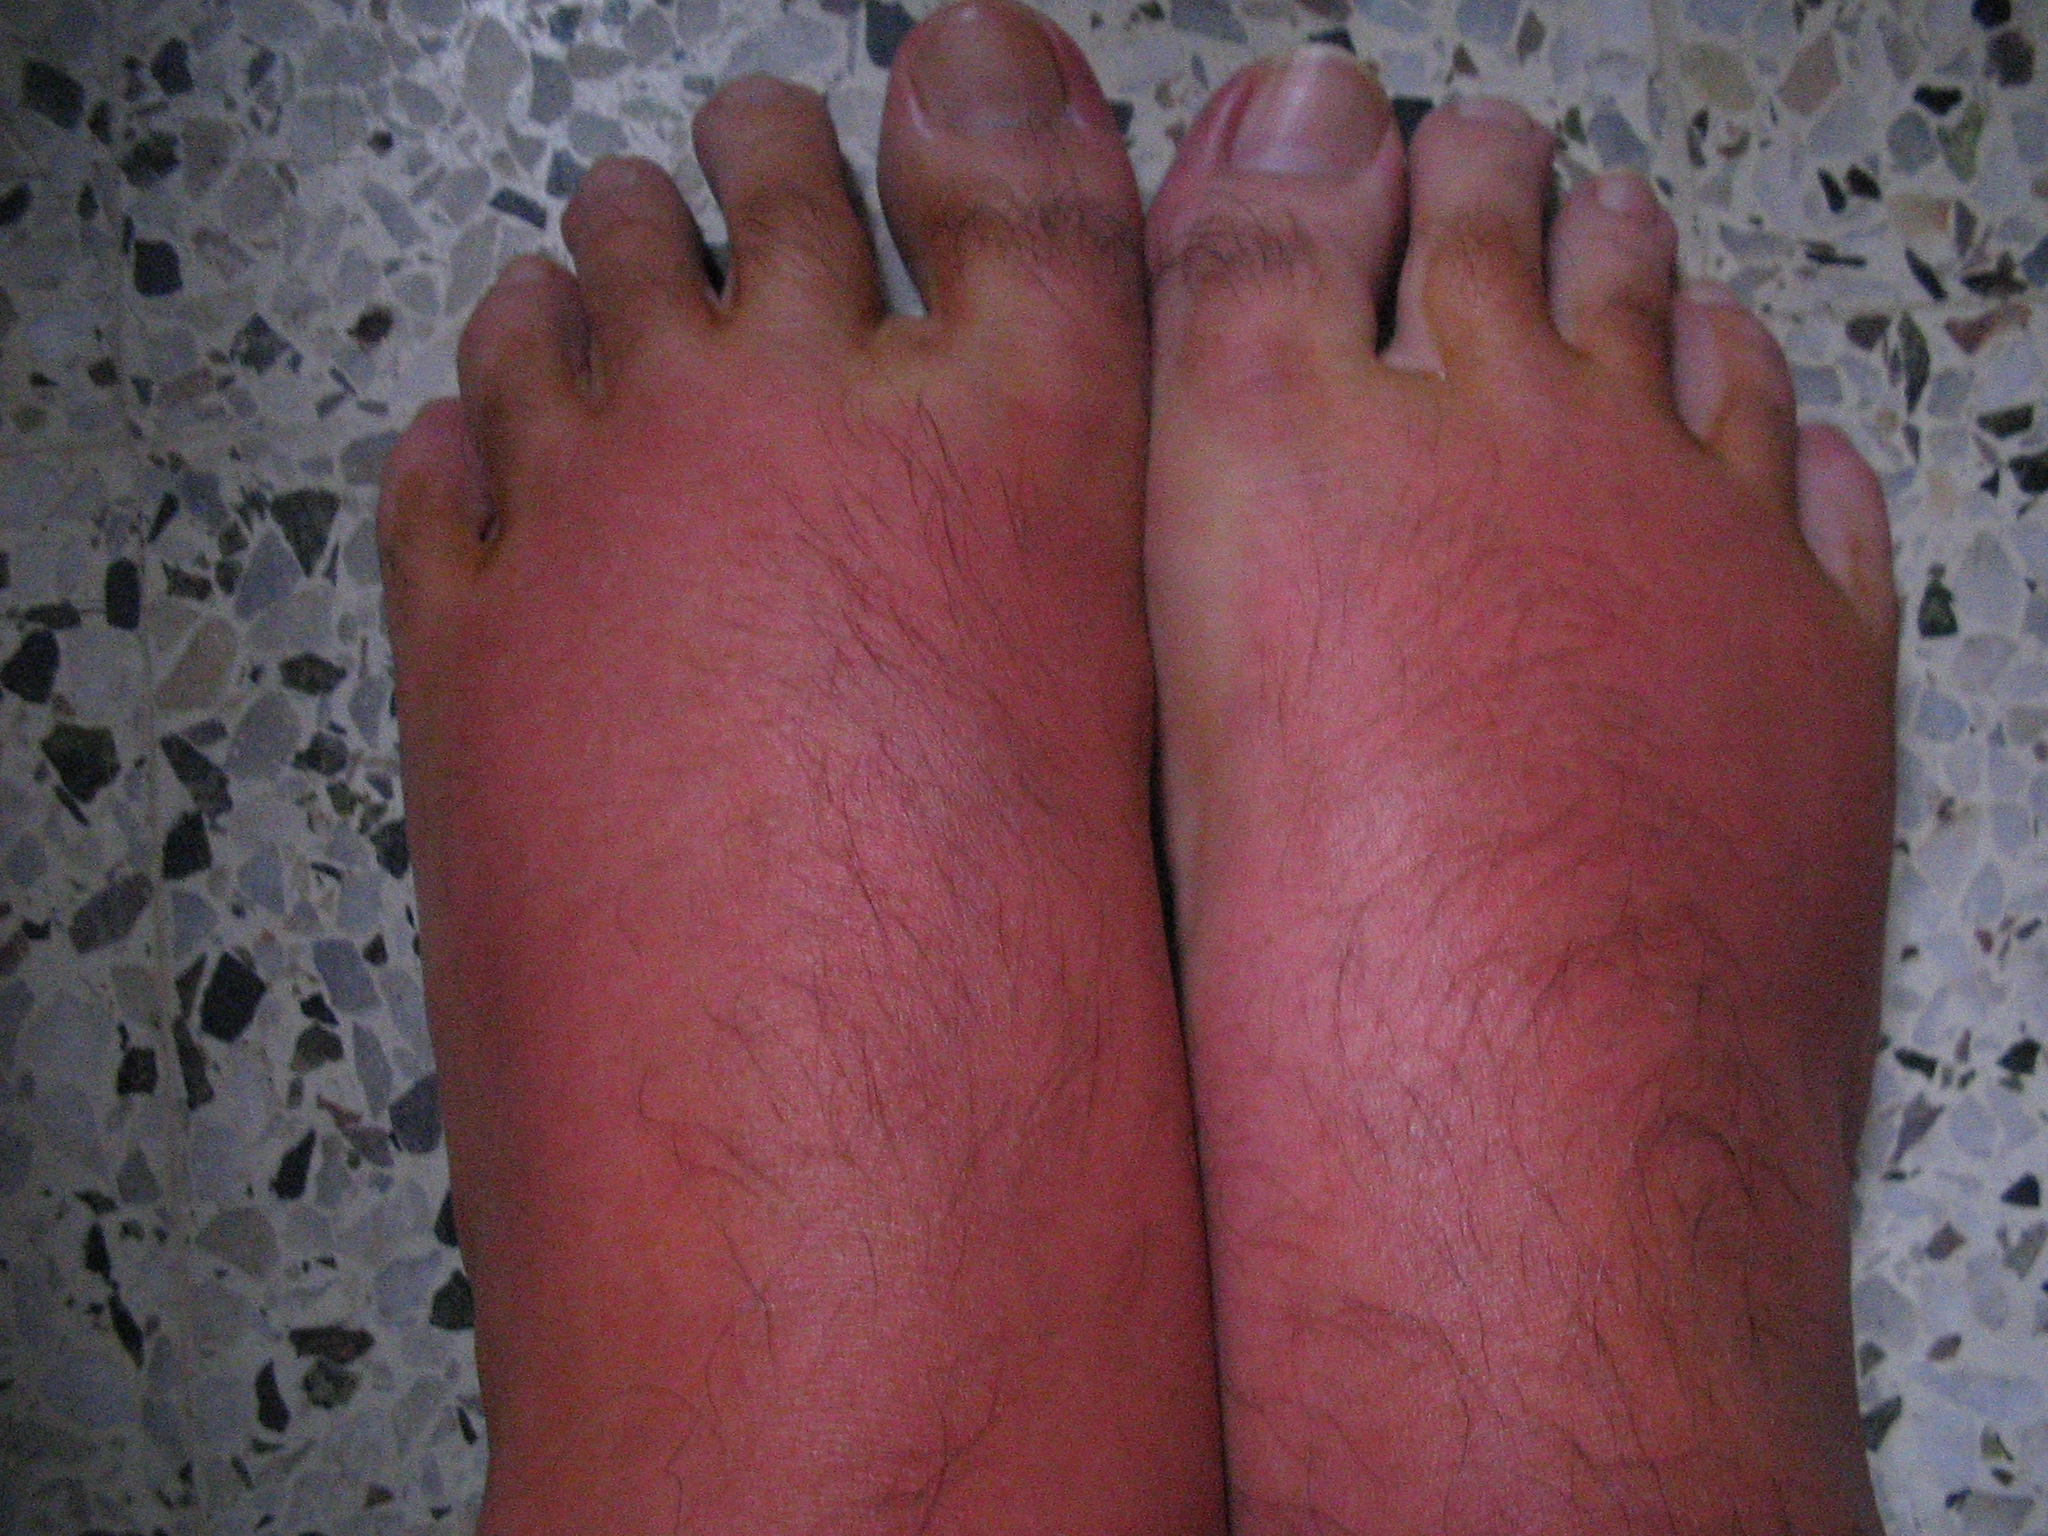 sunburned feet